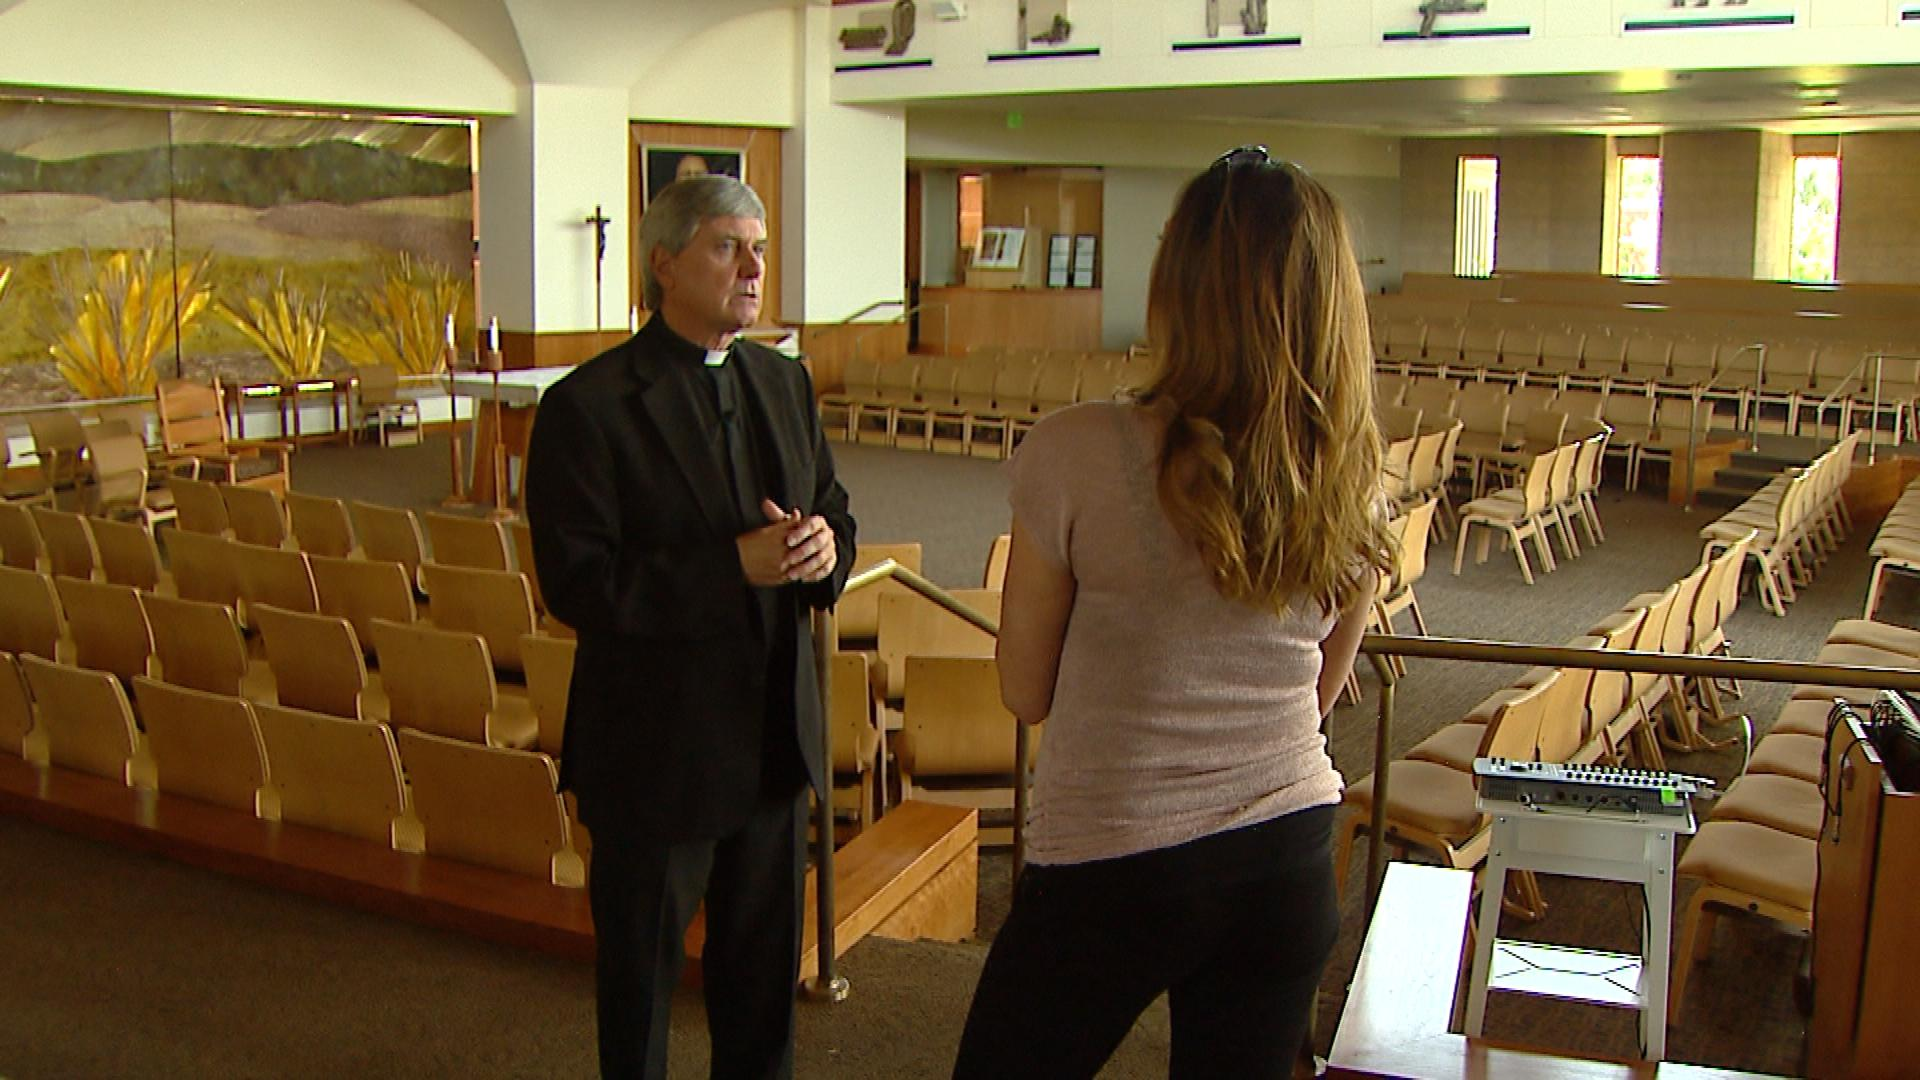 Father Kevin Burke is interviewed by CBS4's Jennifer Brice (credit: CBS)